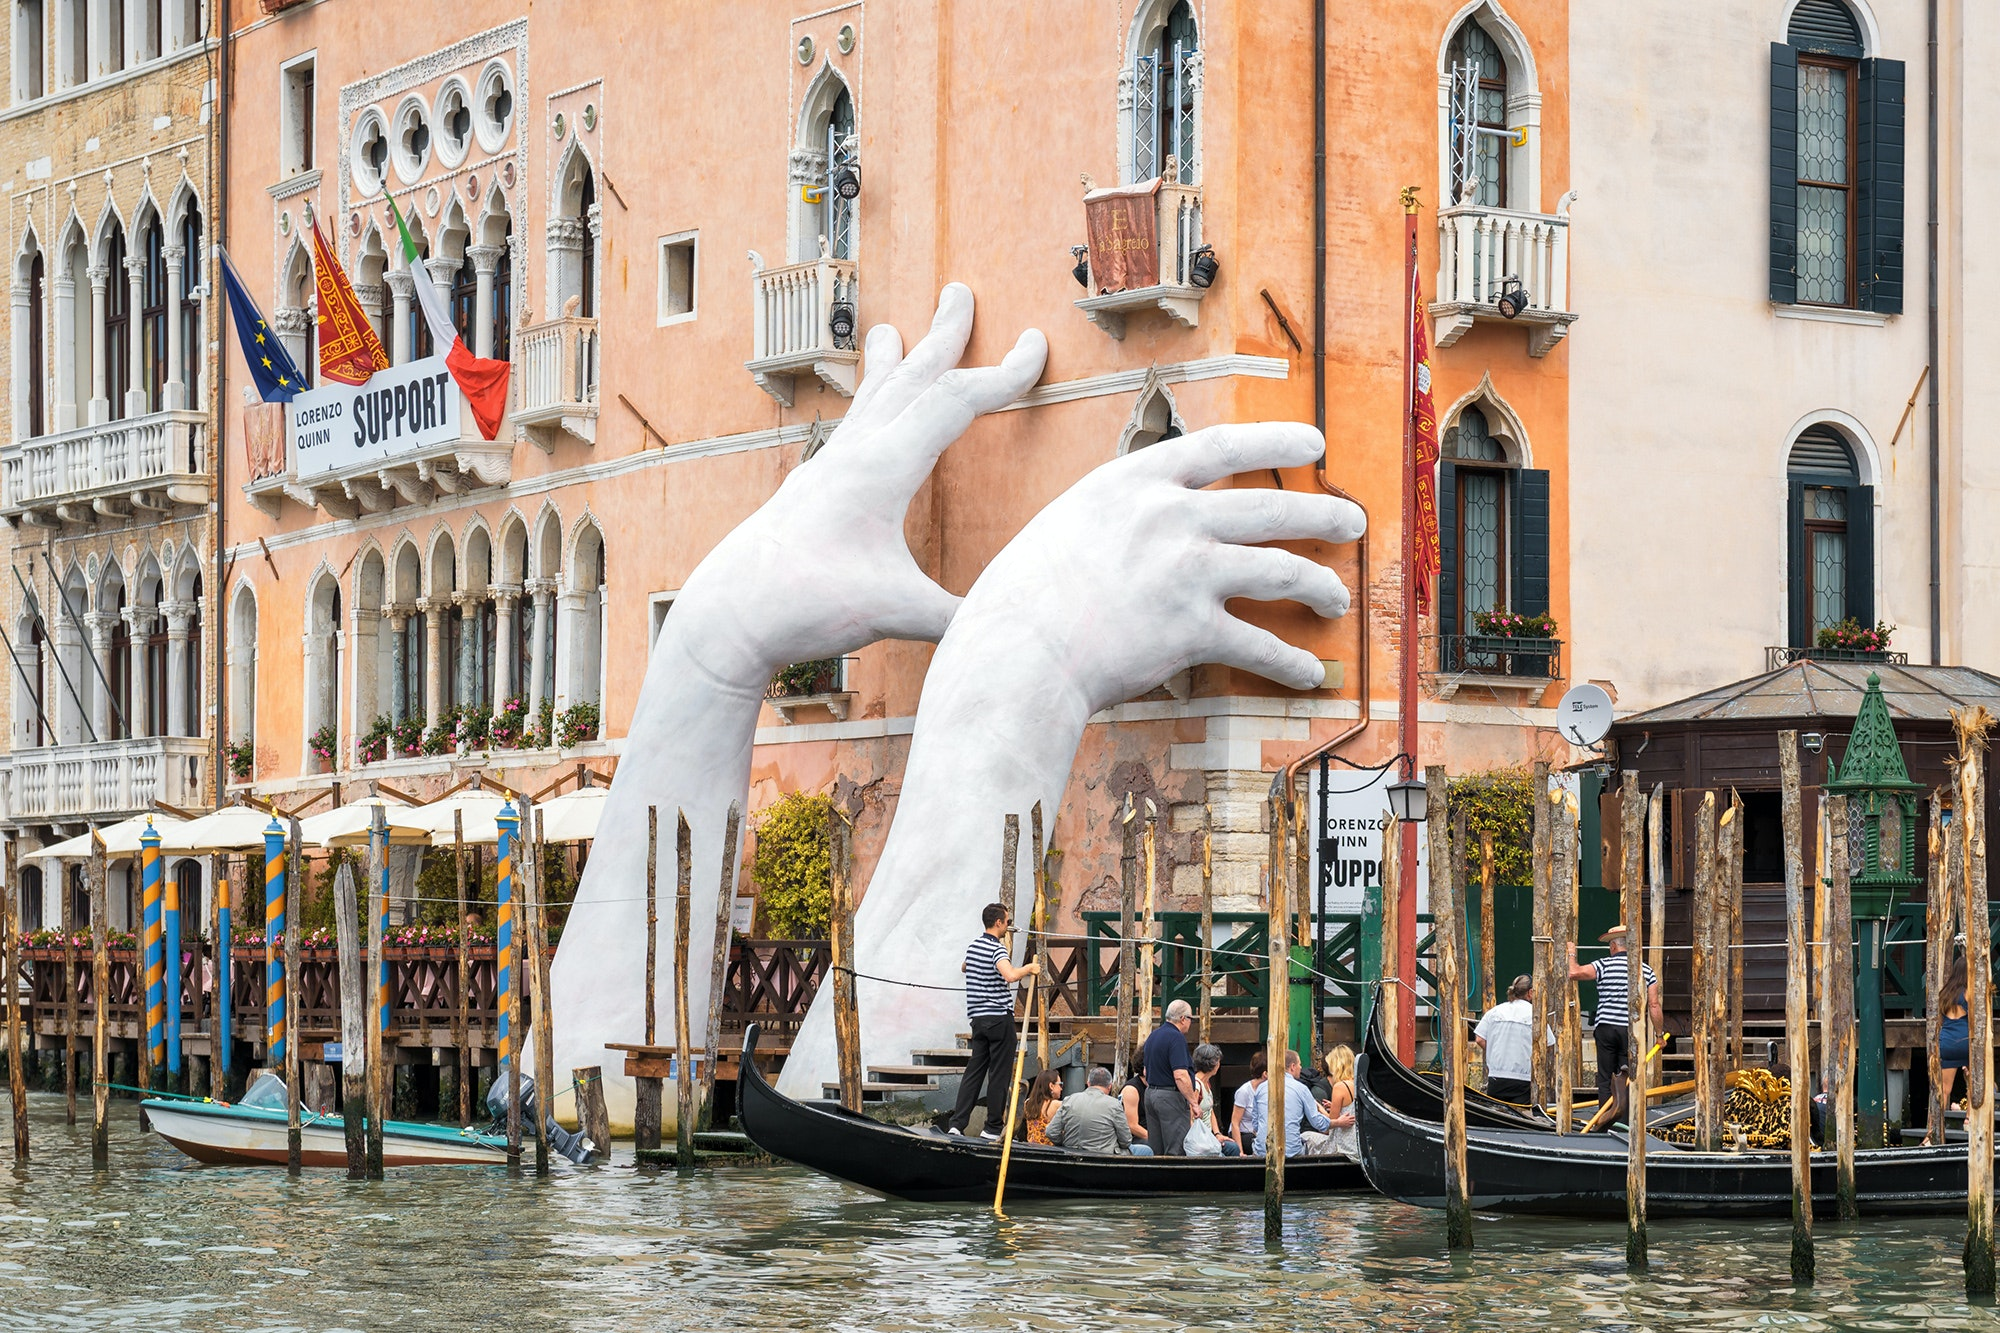 "Quinn's sculpture ""Support"" remained up six months after the close of the 2017 Venice Biennale."